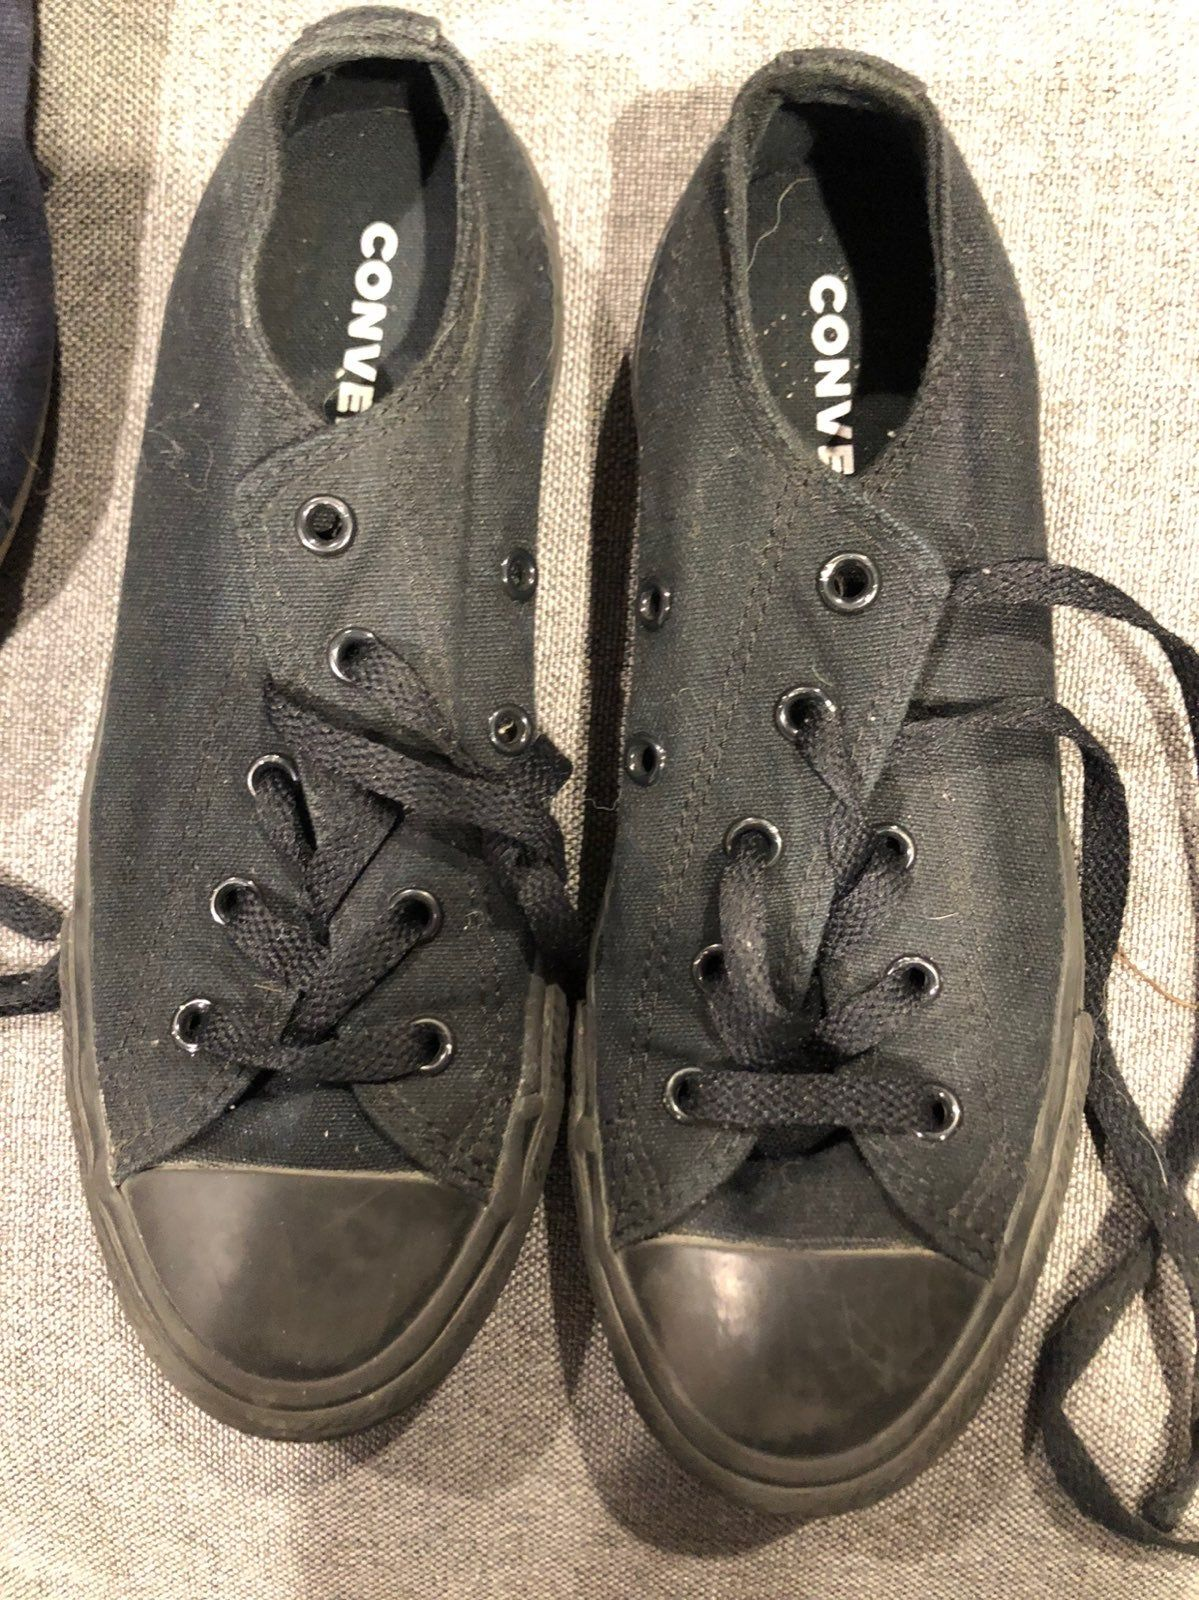 Youth converse size 2. Used only a